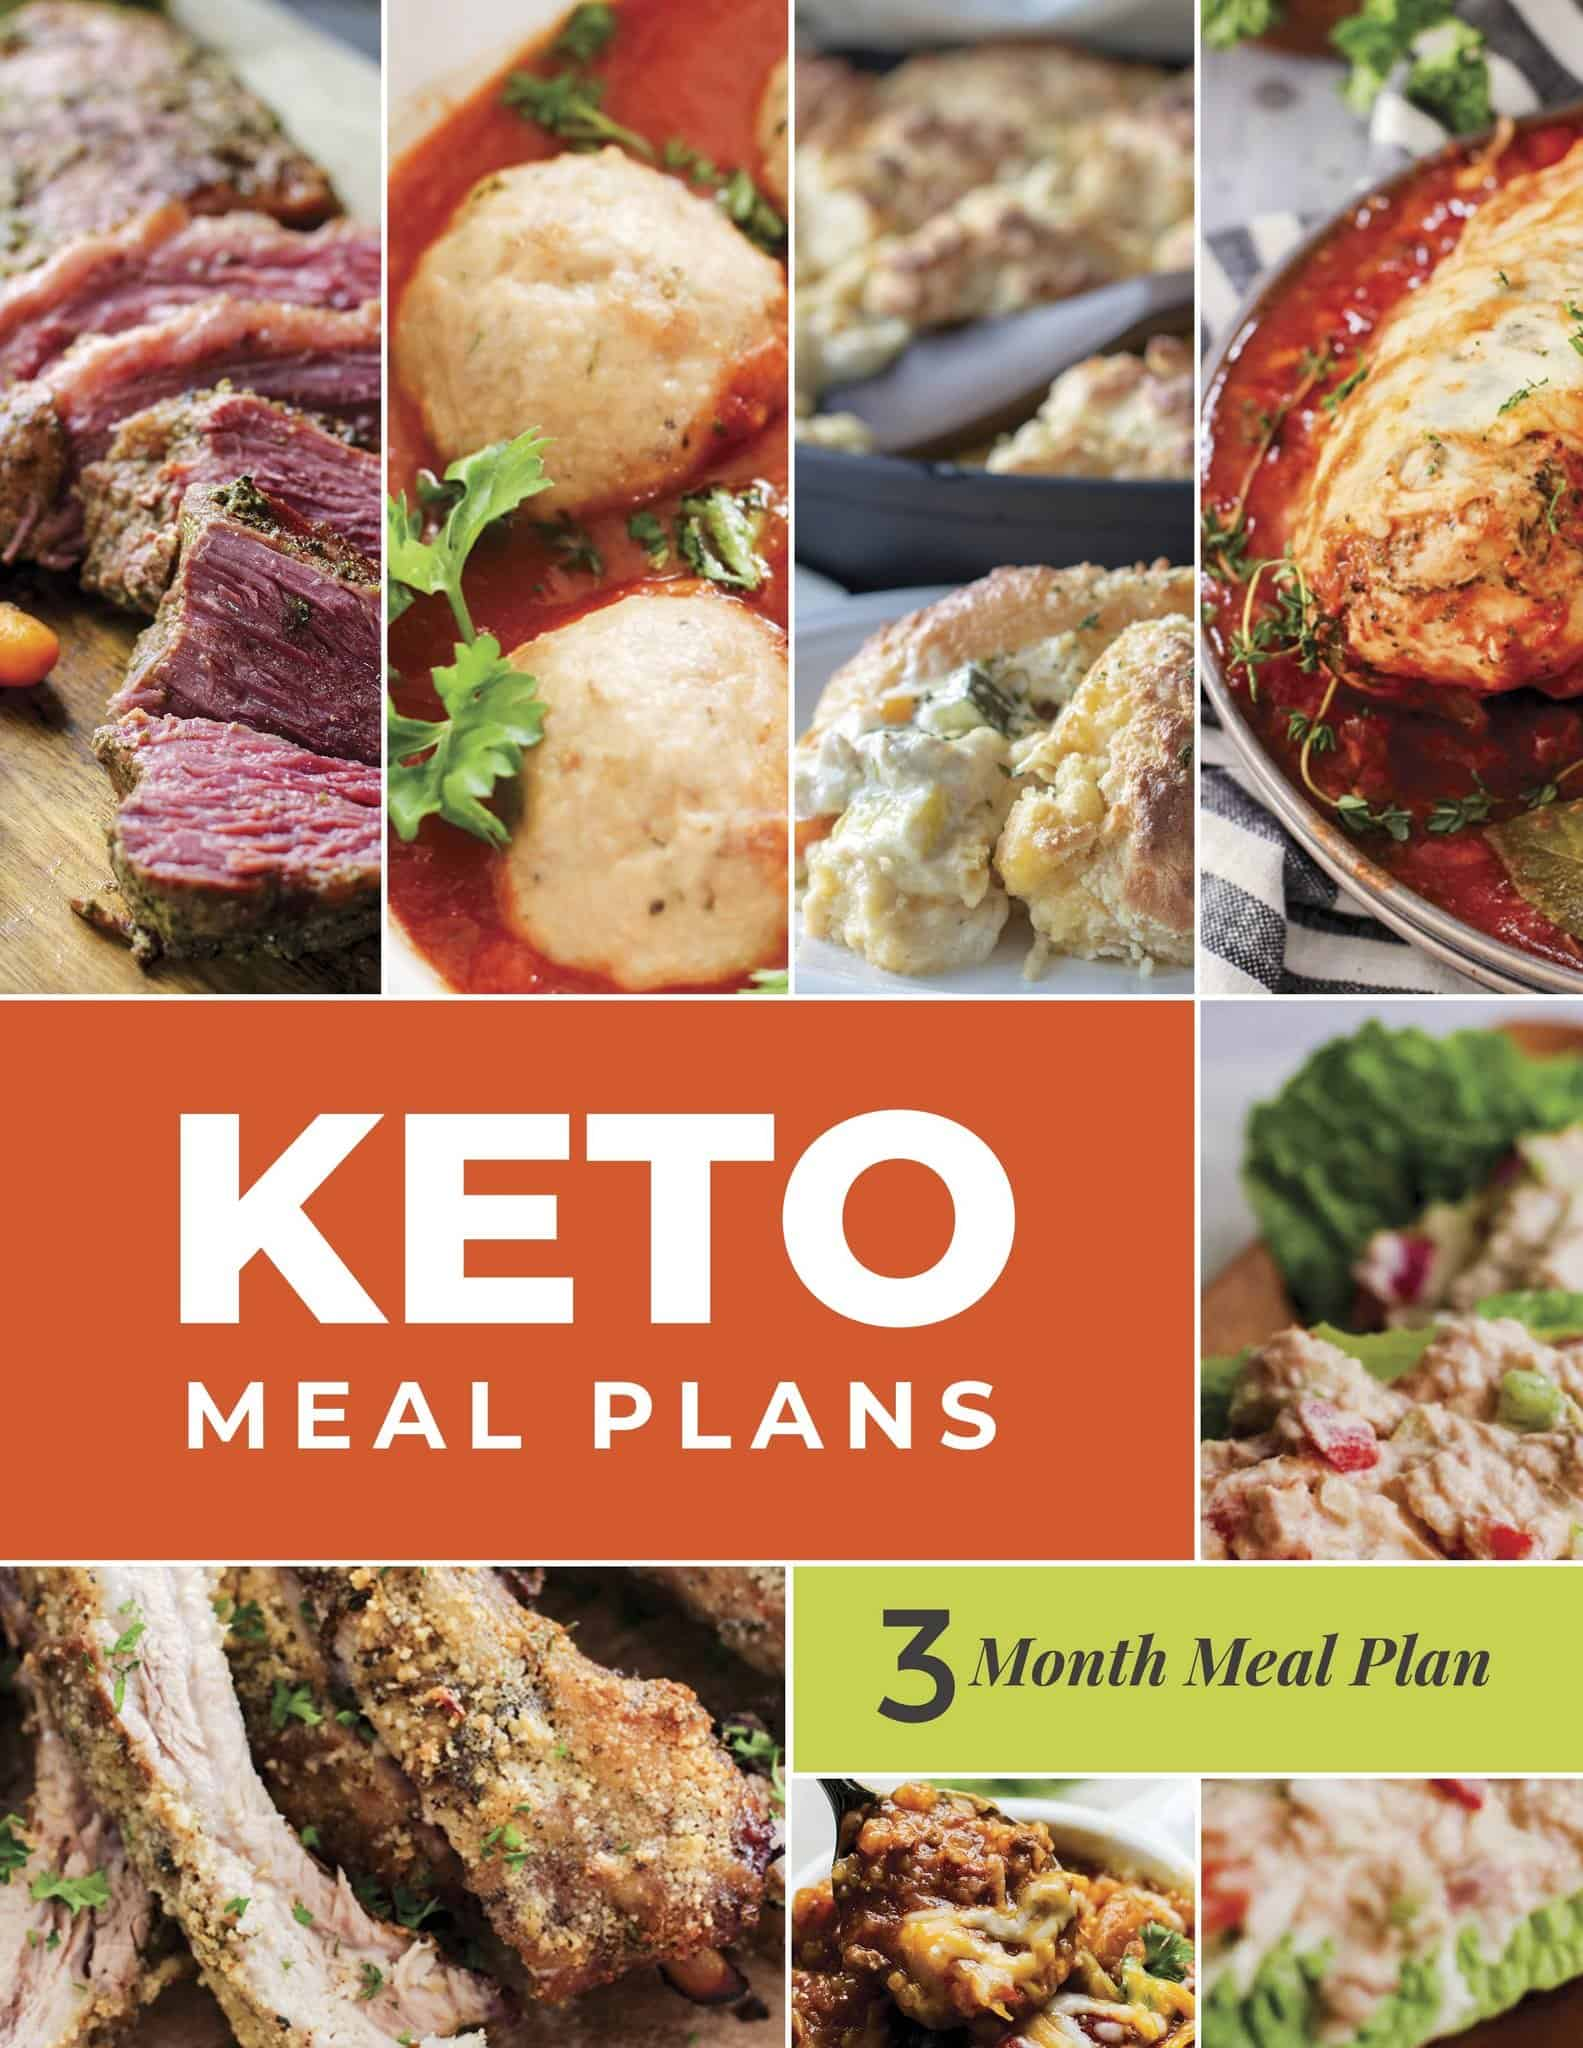 Keto meal plan 3 month printable download